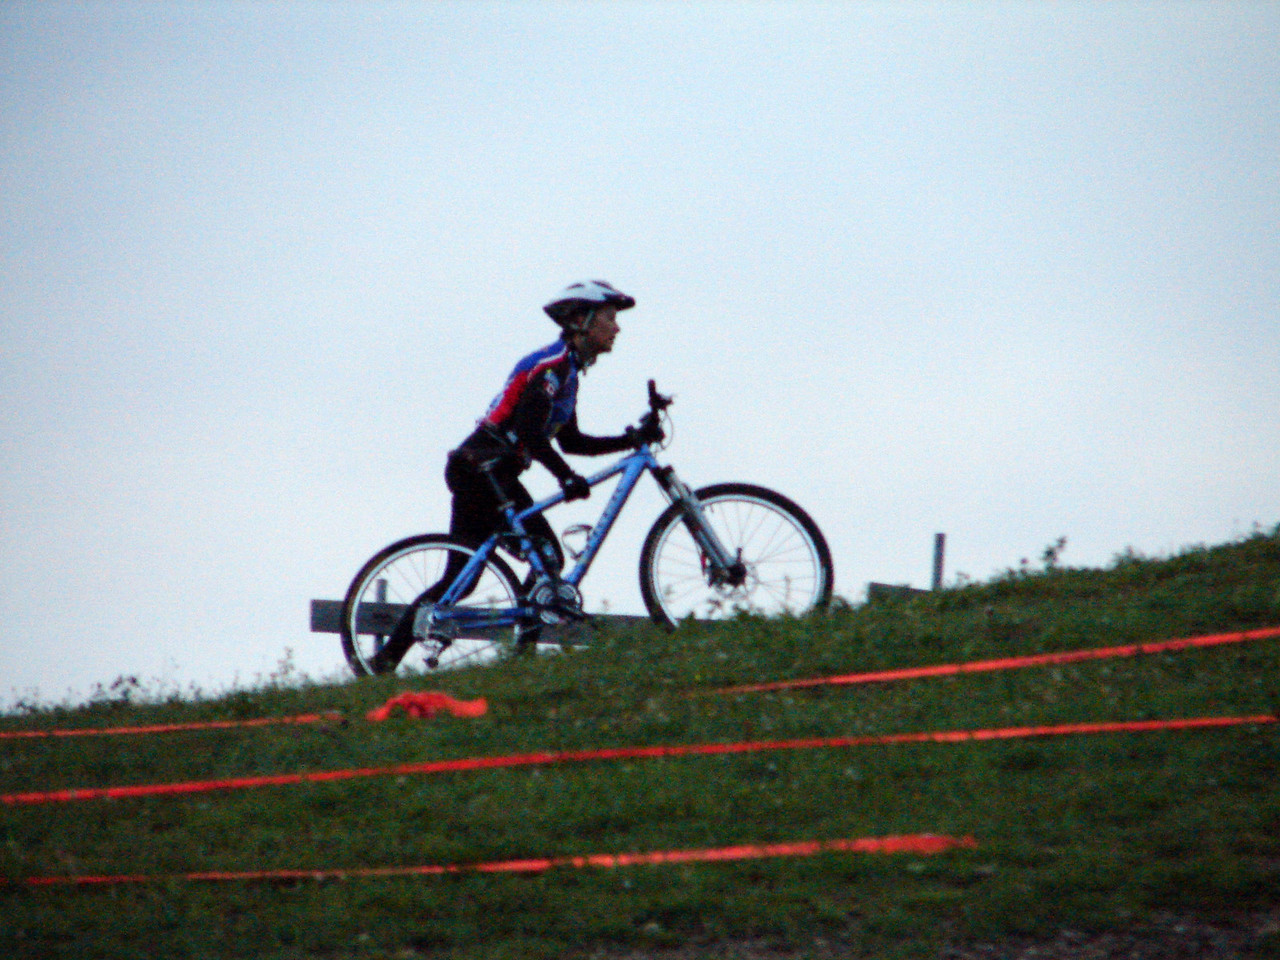 Michelle dismounting and running.